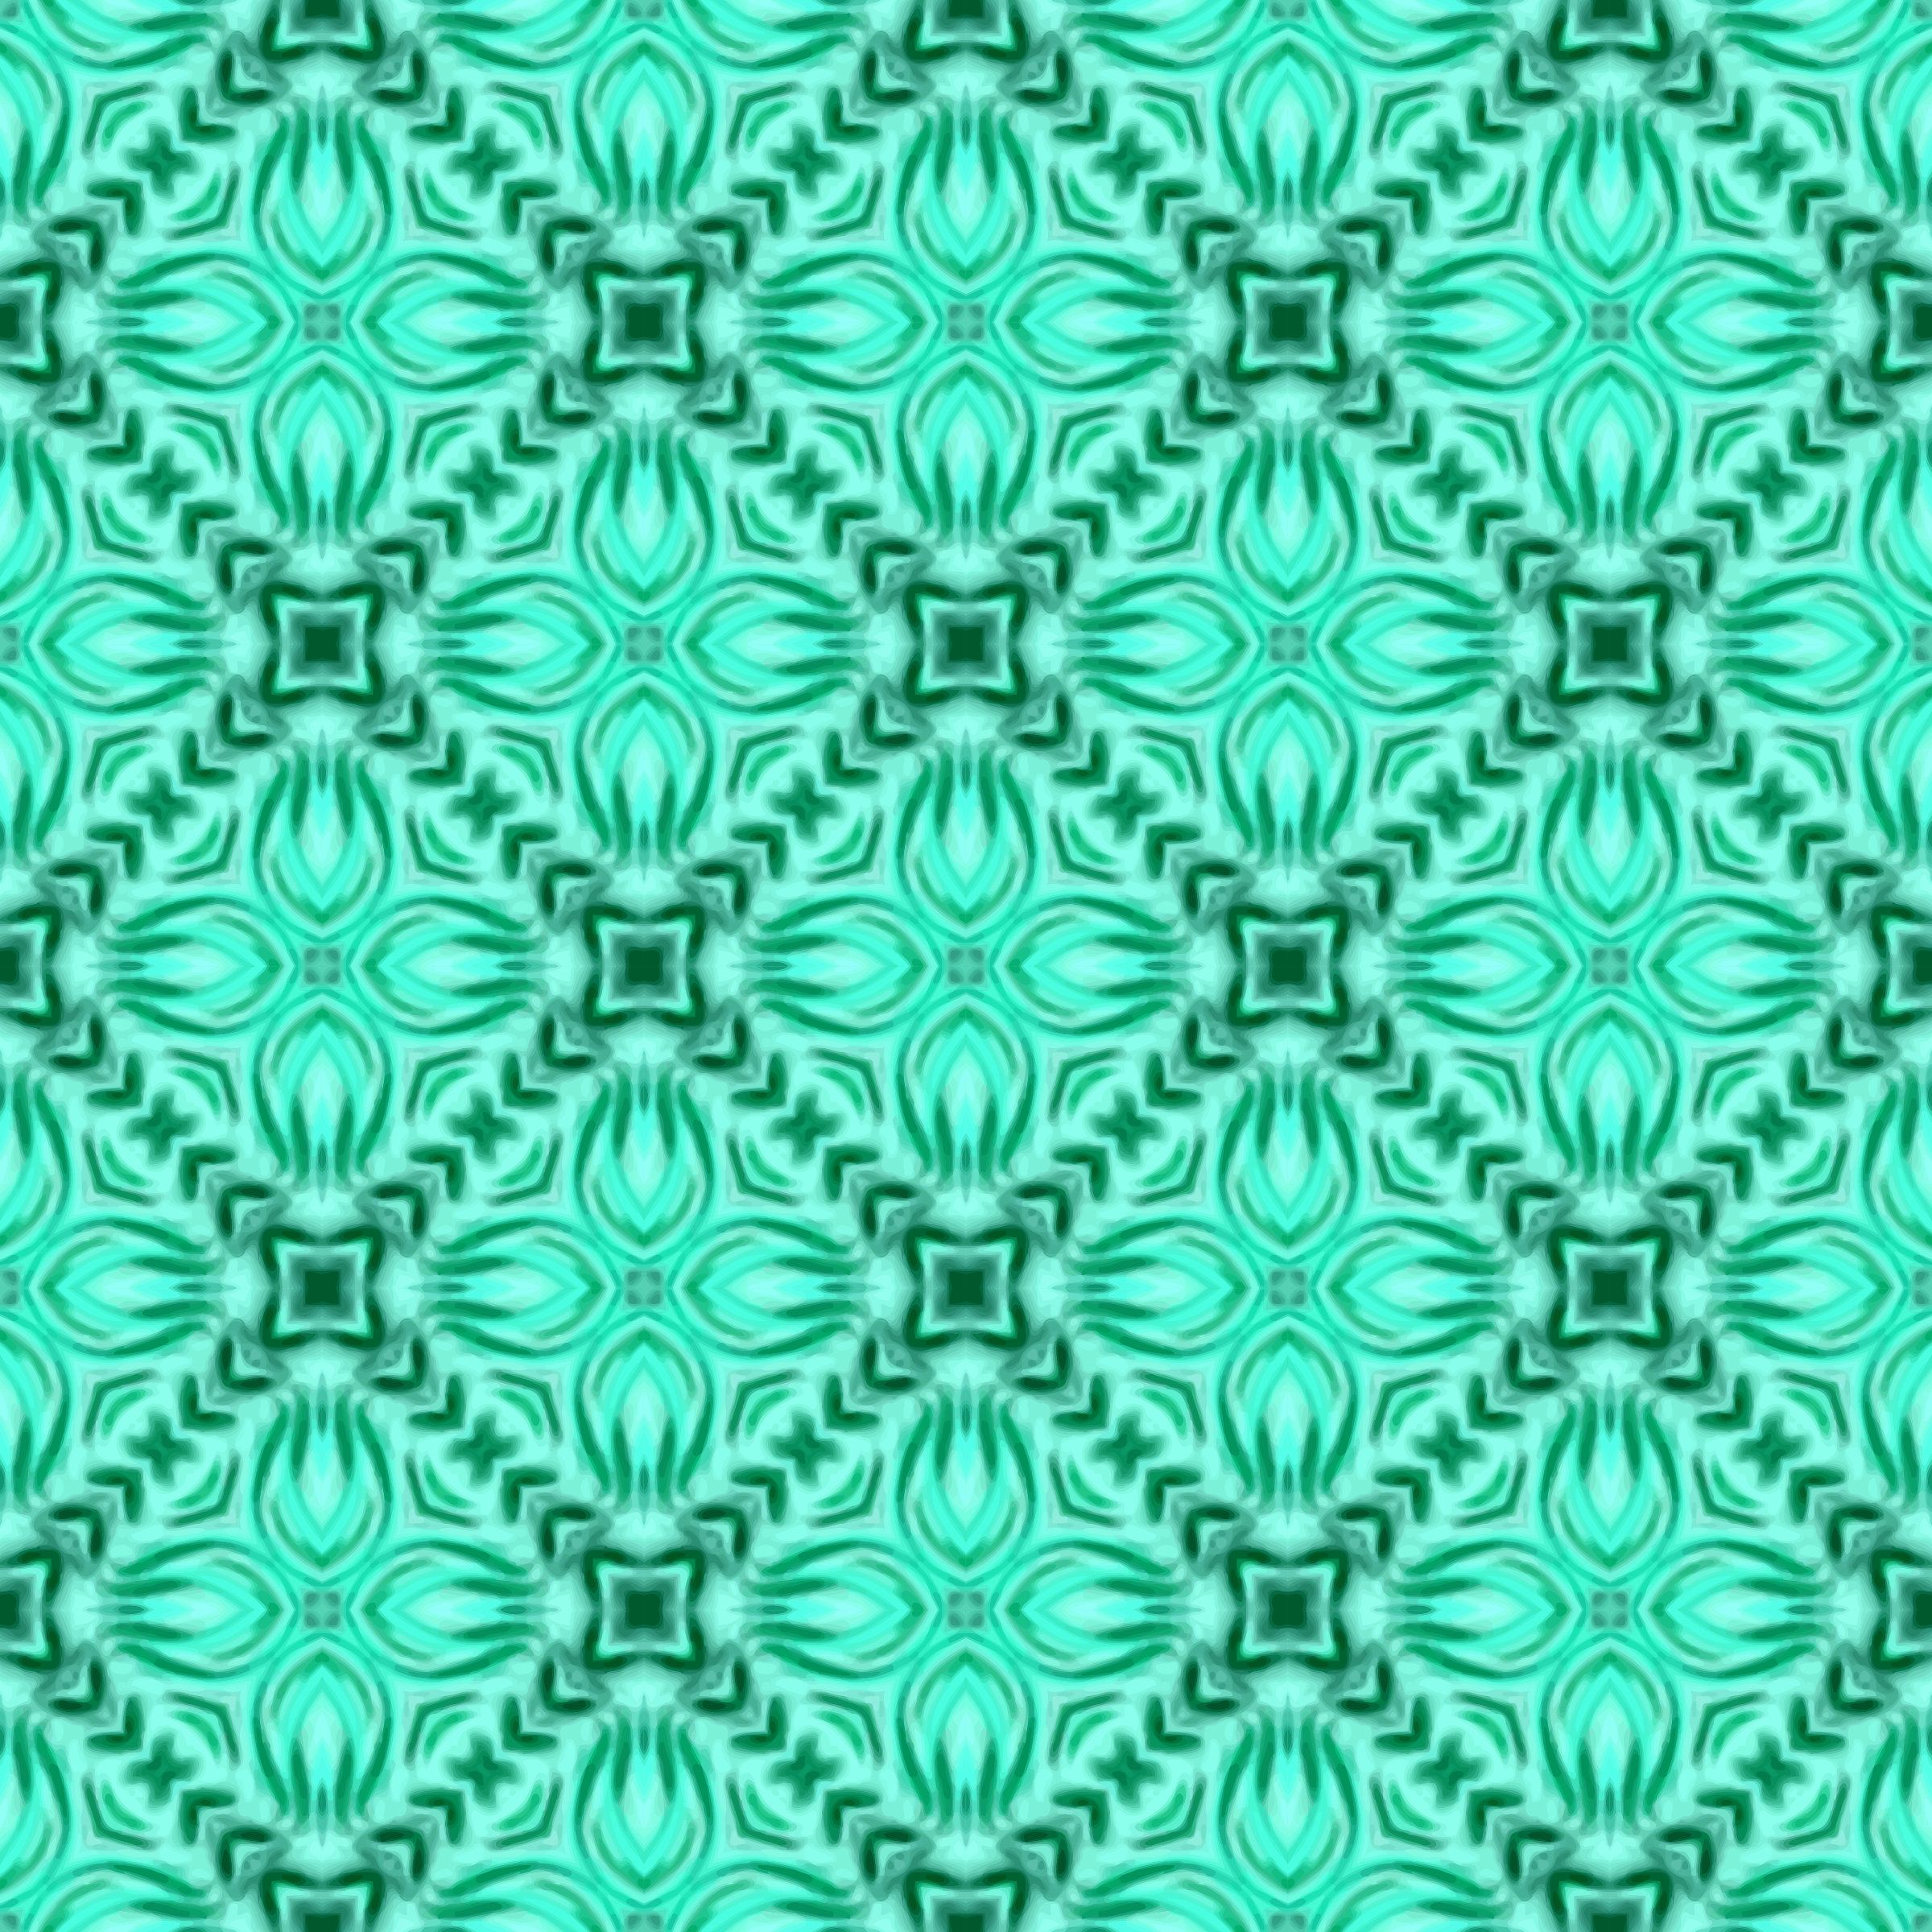 Background pattern 162 (colour 2) by Firkin